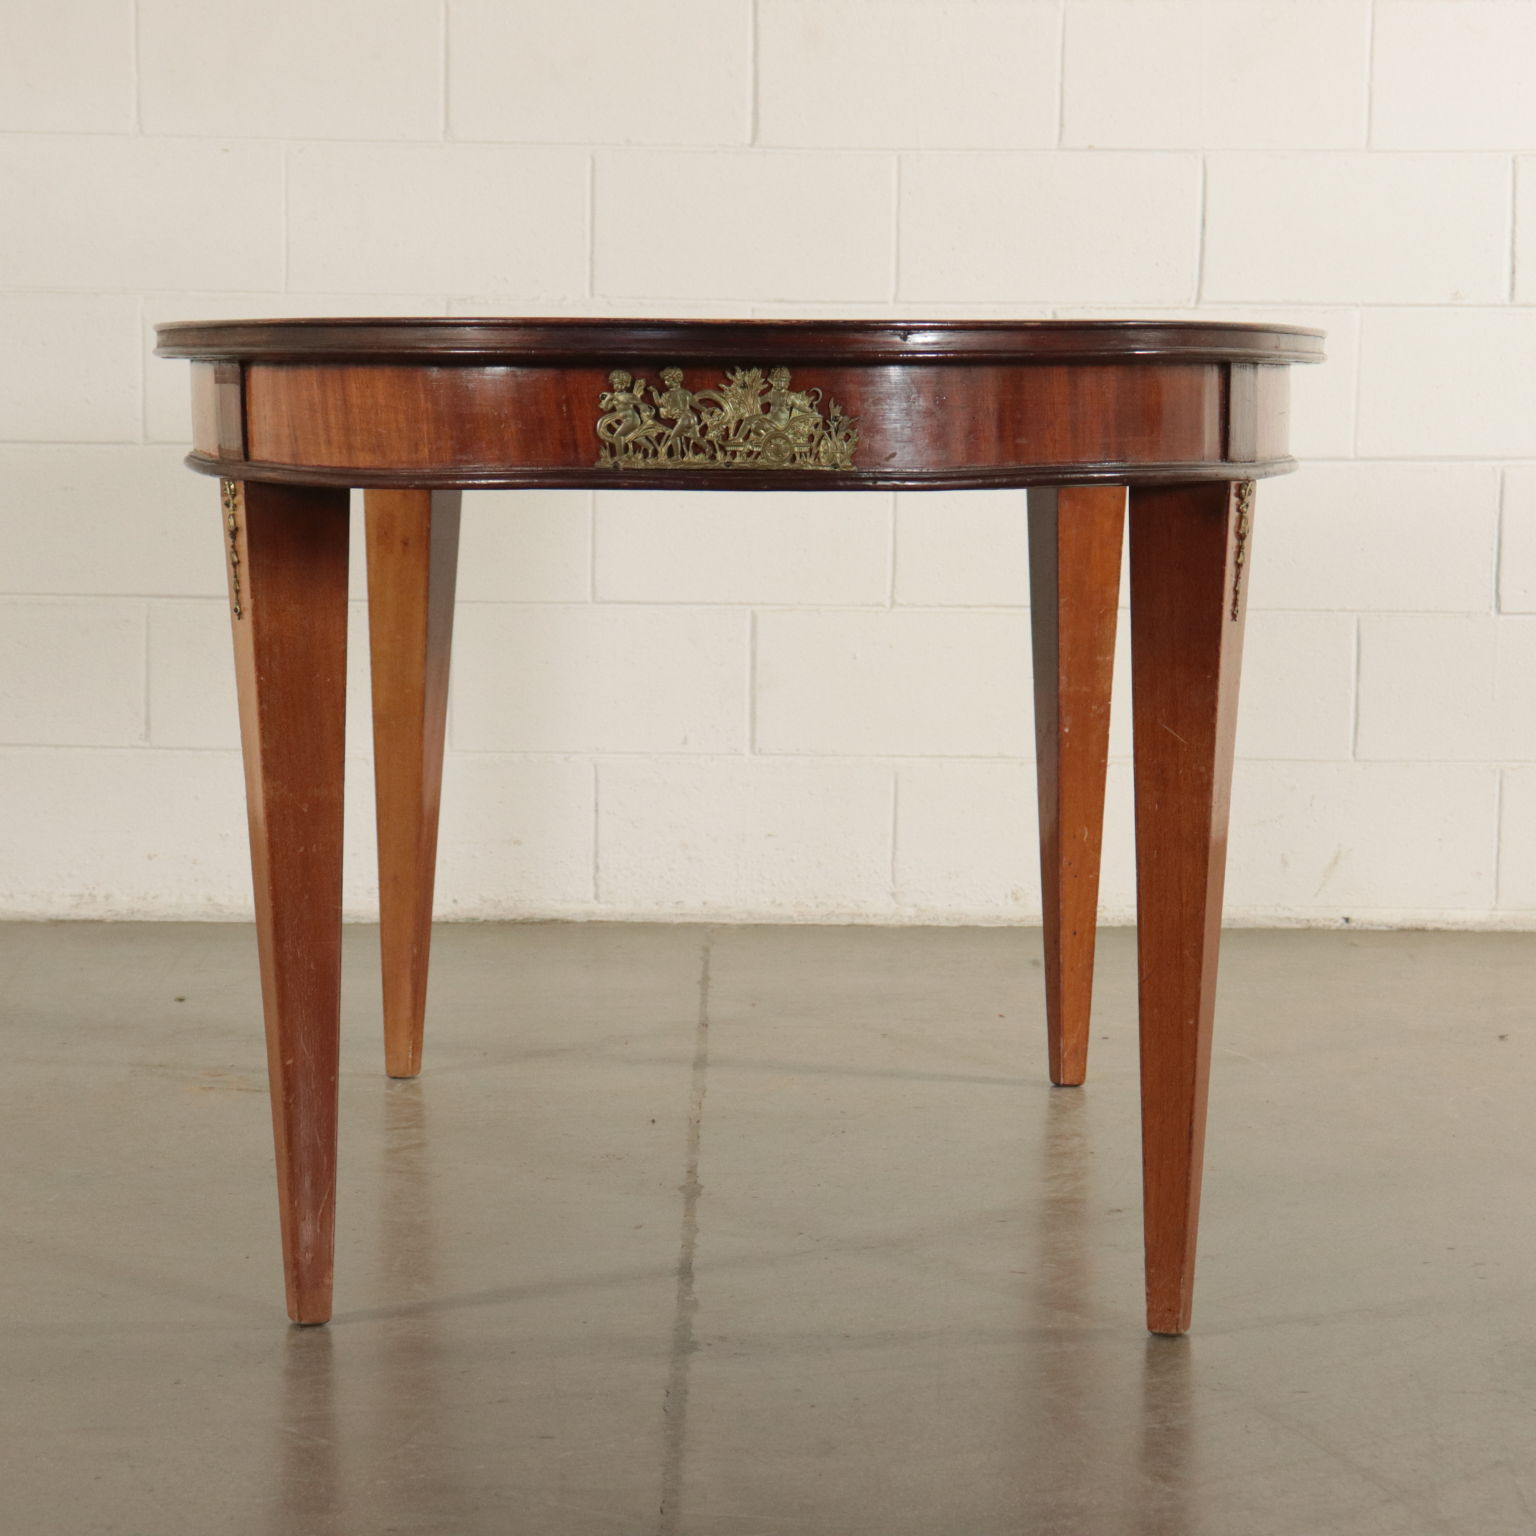 Oval Mahogany Table Louis Xvi Revival Italy 20th Century Mobili